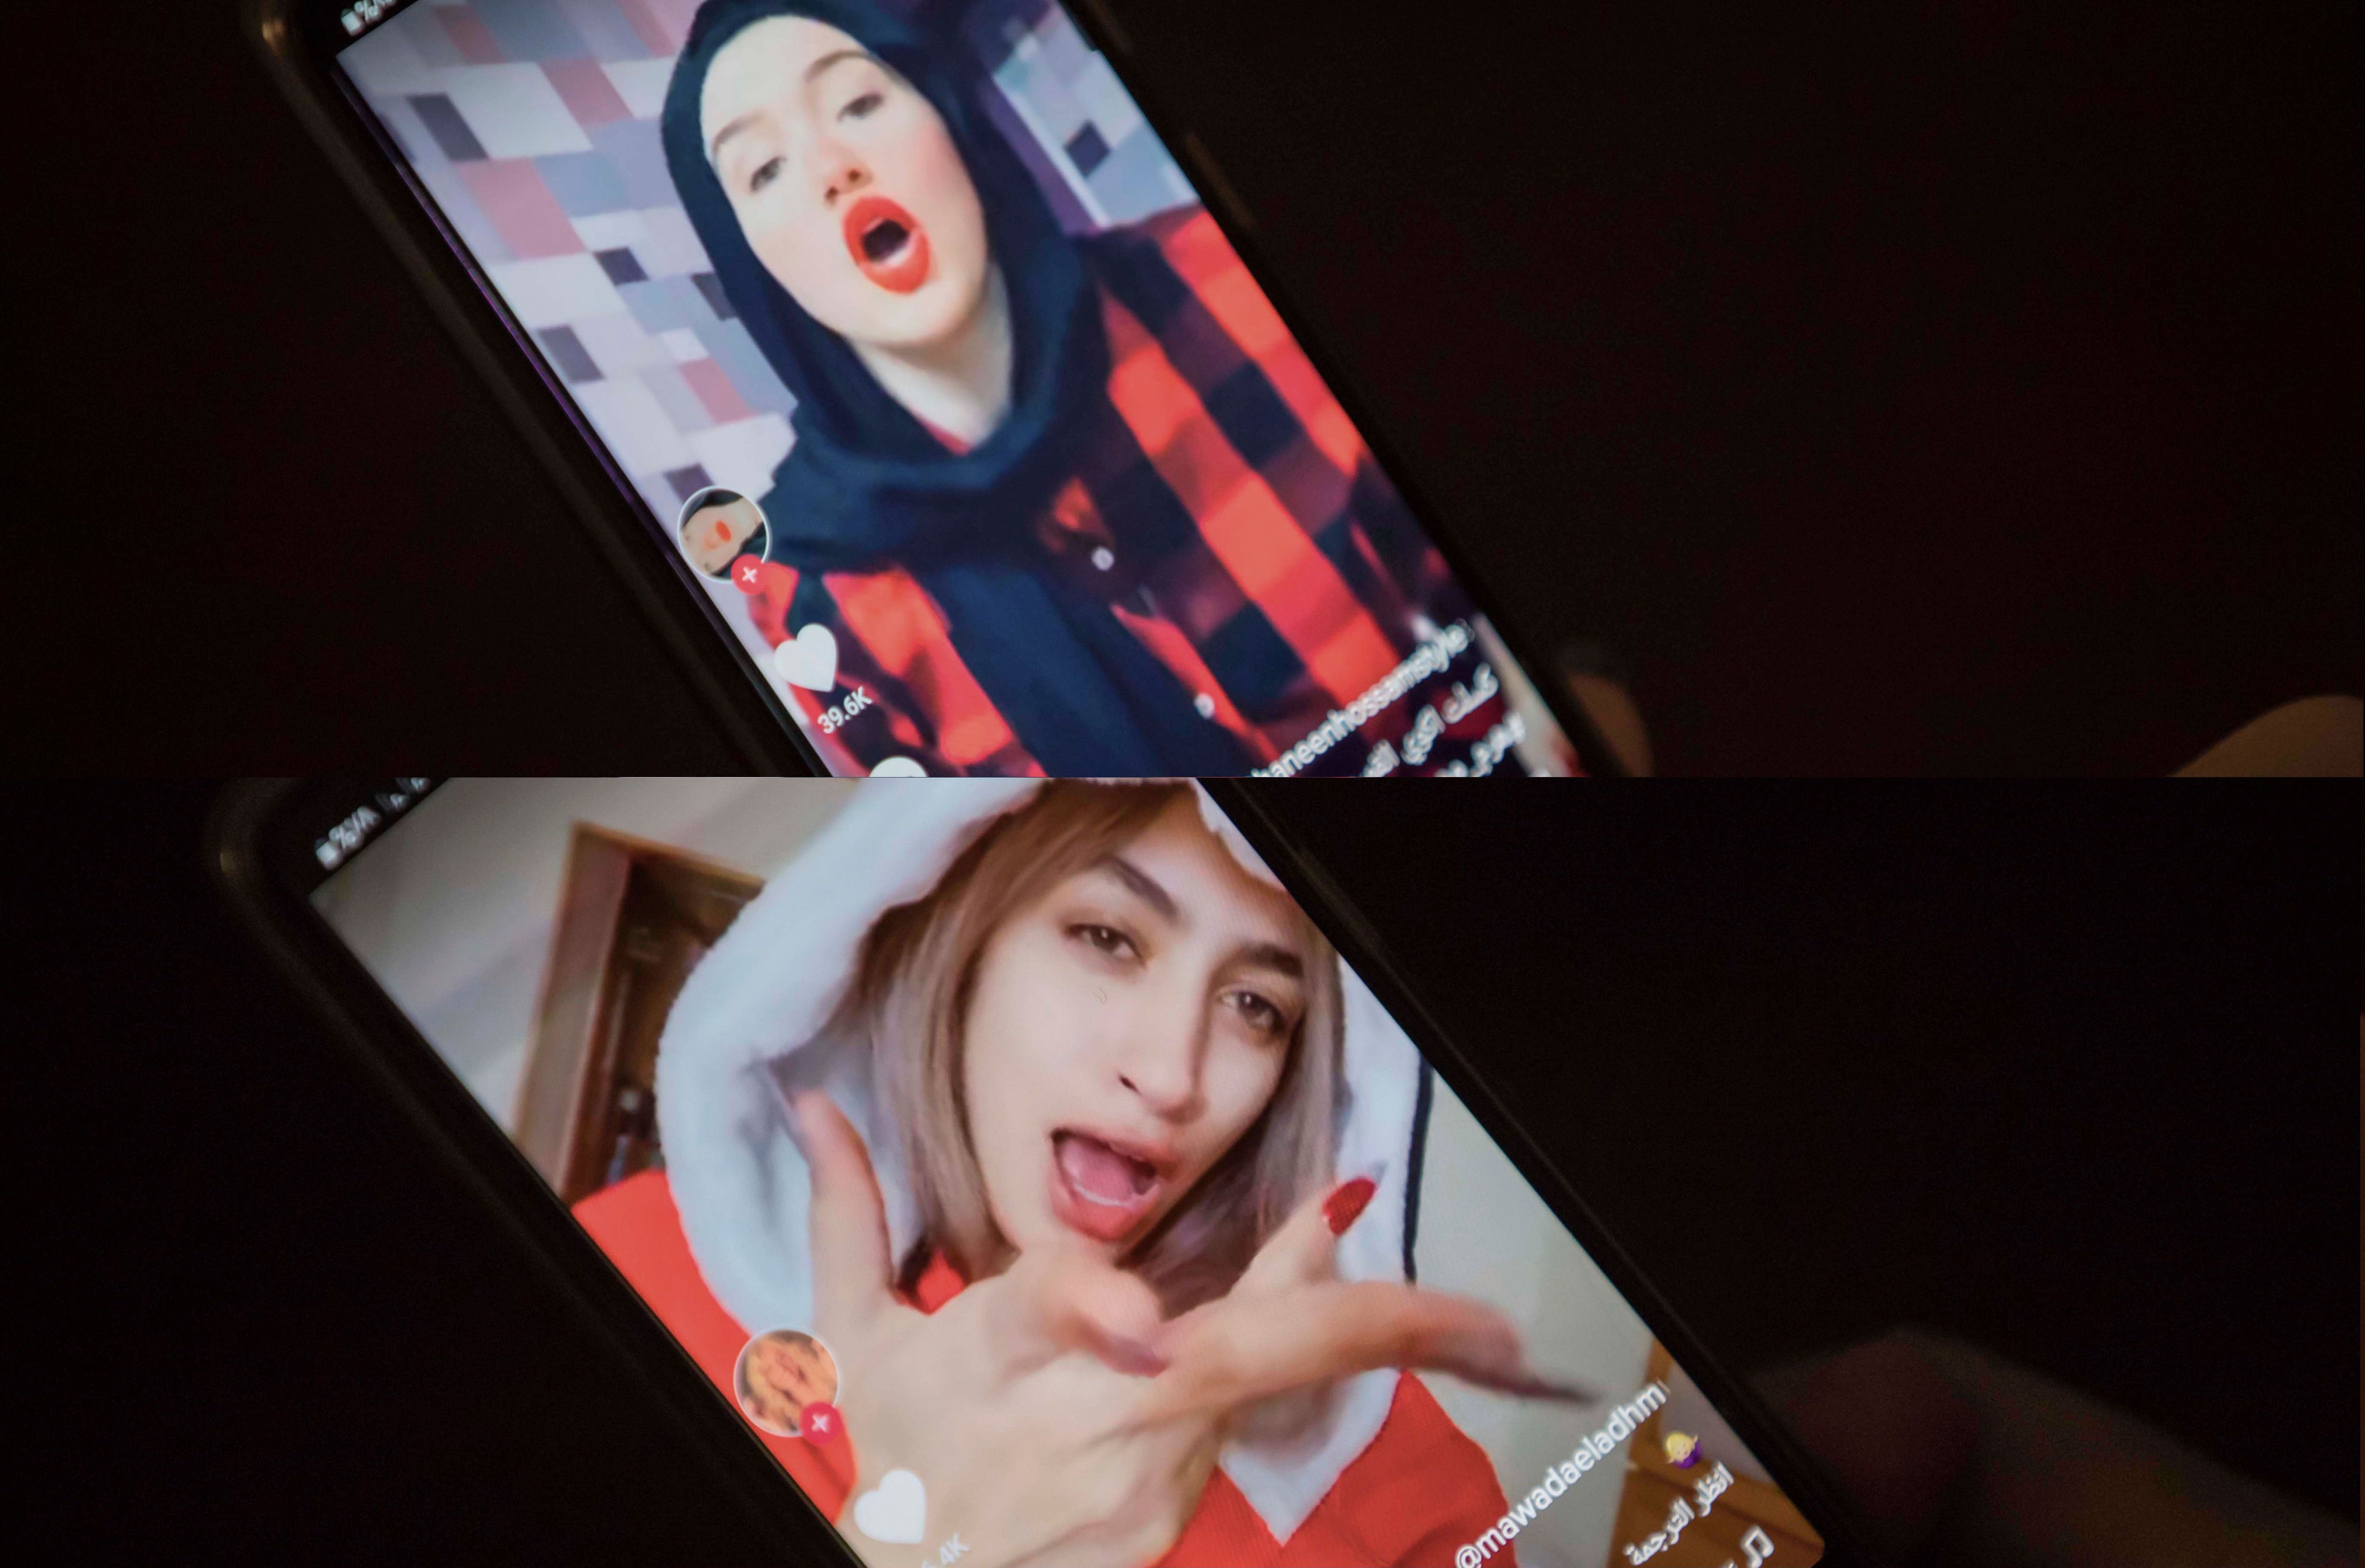 TikTok videos shared by Egyptian influencers Haneen Hossam (top) and Mowada al-Adham (bottom), being viewed in Cairo, Egypt on July 28, 2020.